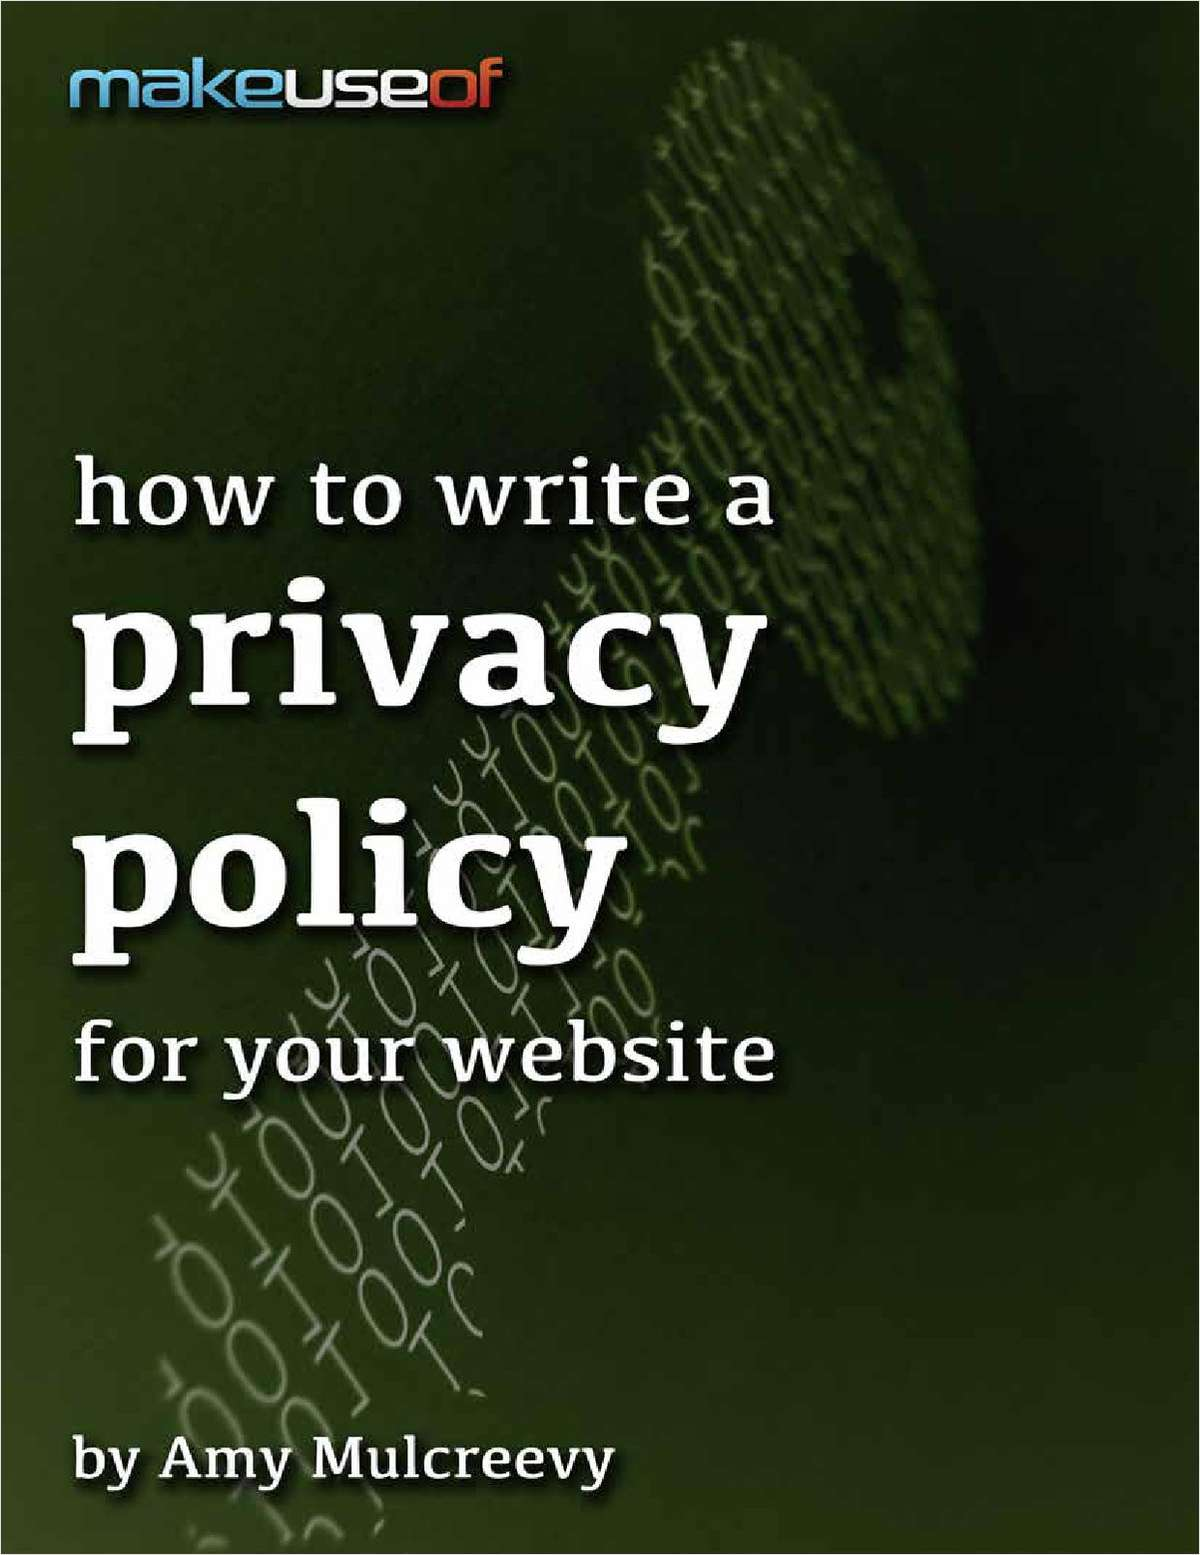 How to Write a Privacy Policy for Your Website